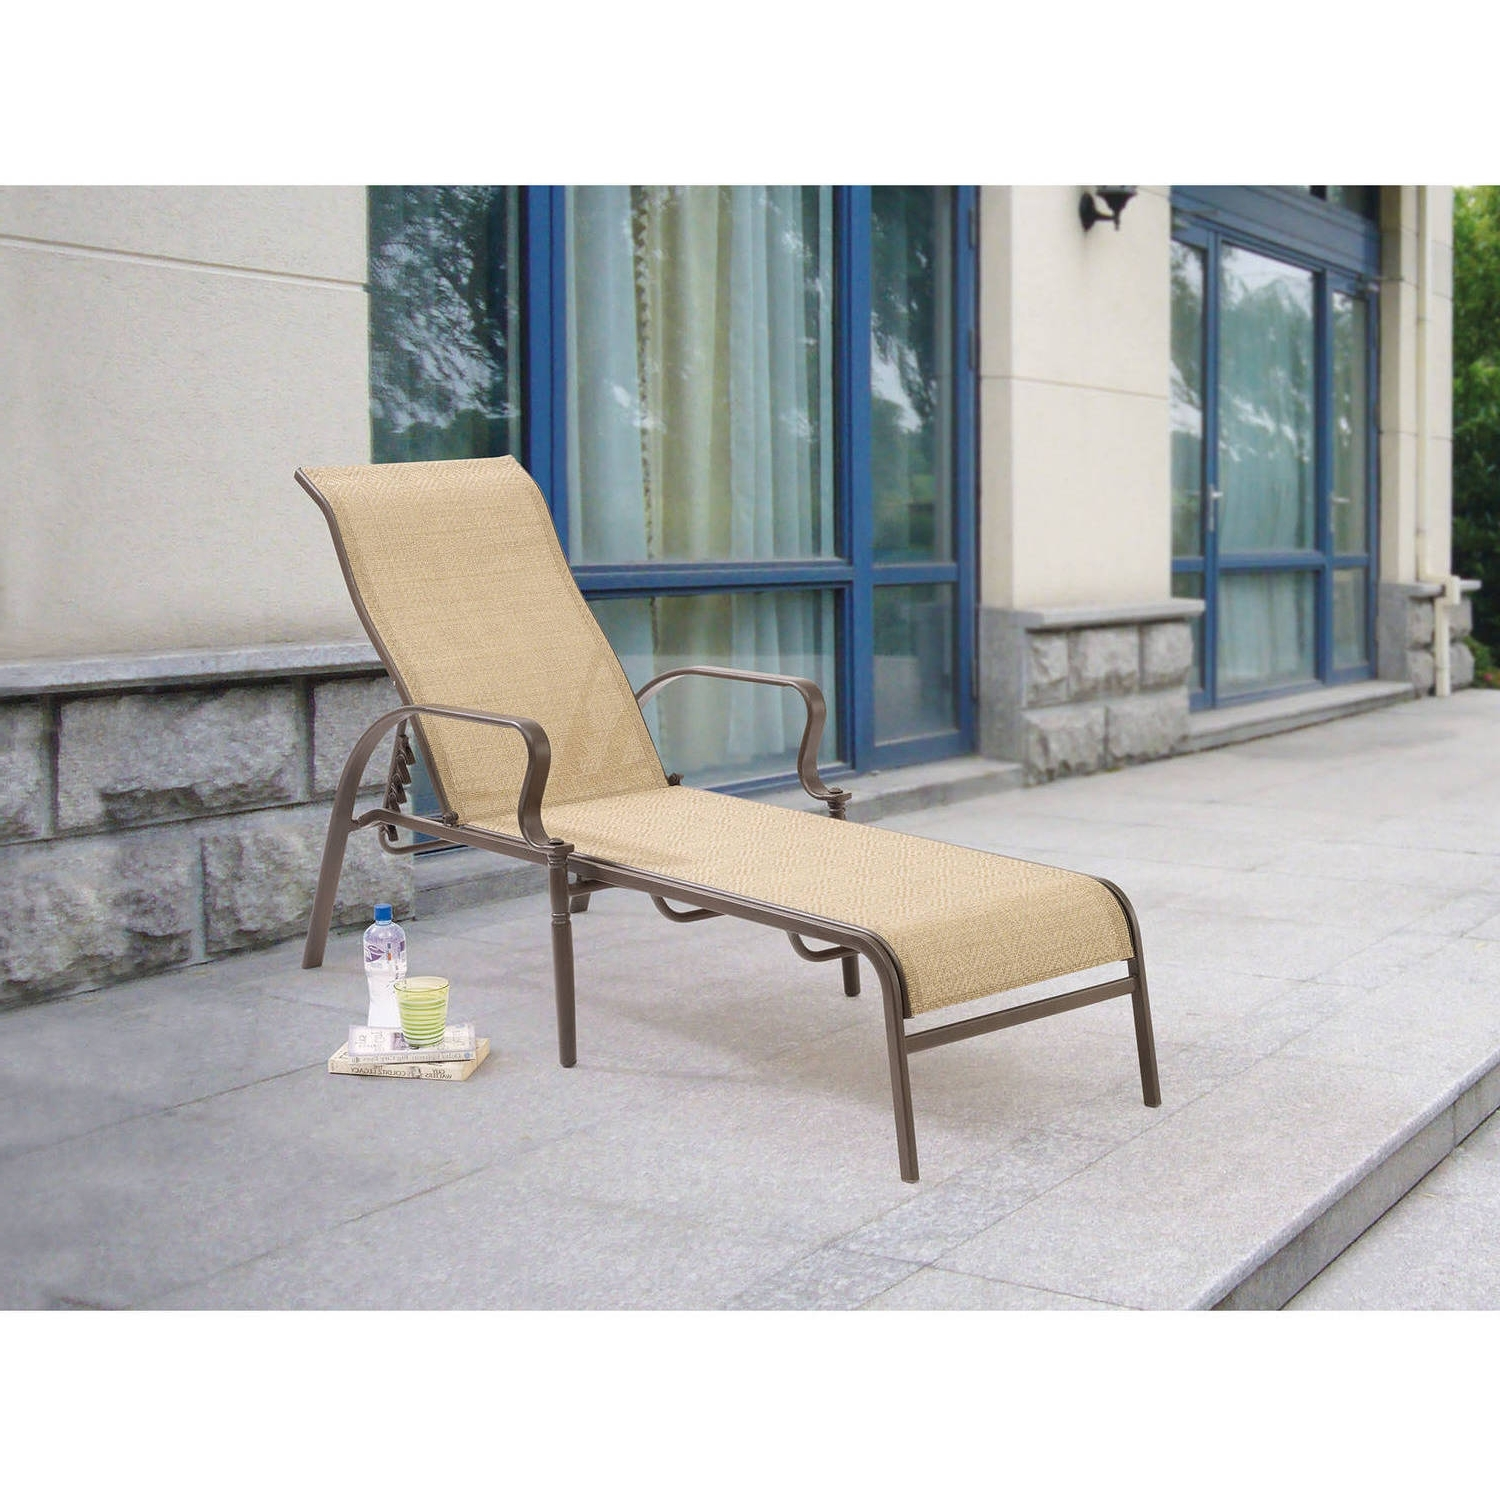 Walmart Outdoor Chaise Lounges With Regard To Widely Used Mainstays Wesley Creek Sling Outdoor Chaise Lounge – Walmart (View 13 of 15)